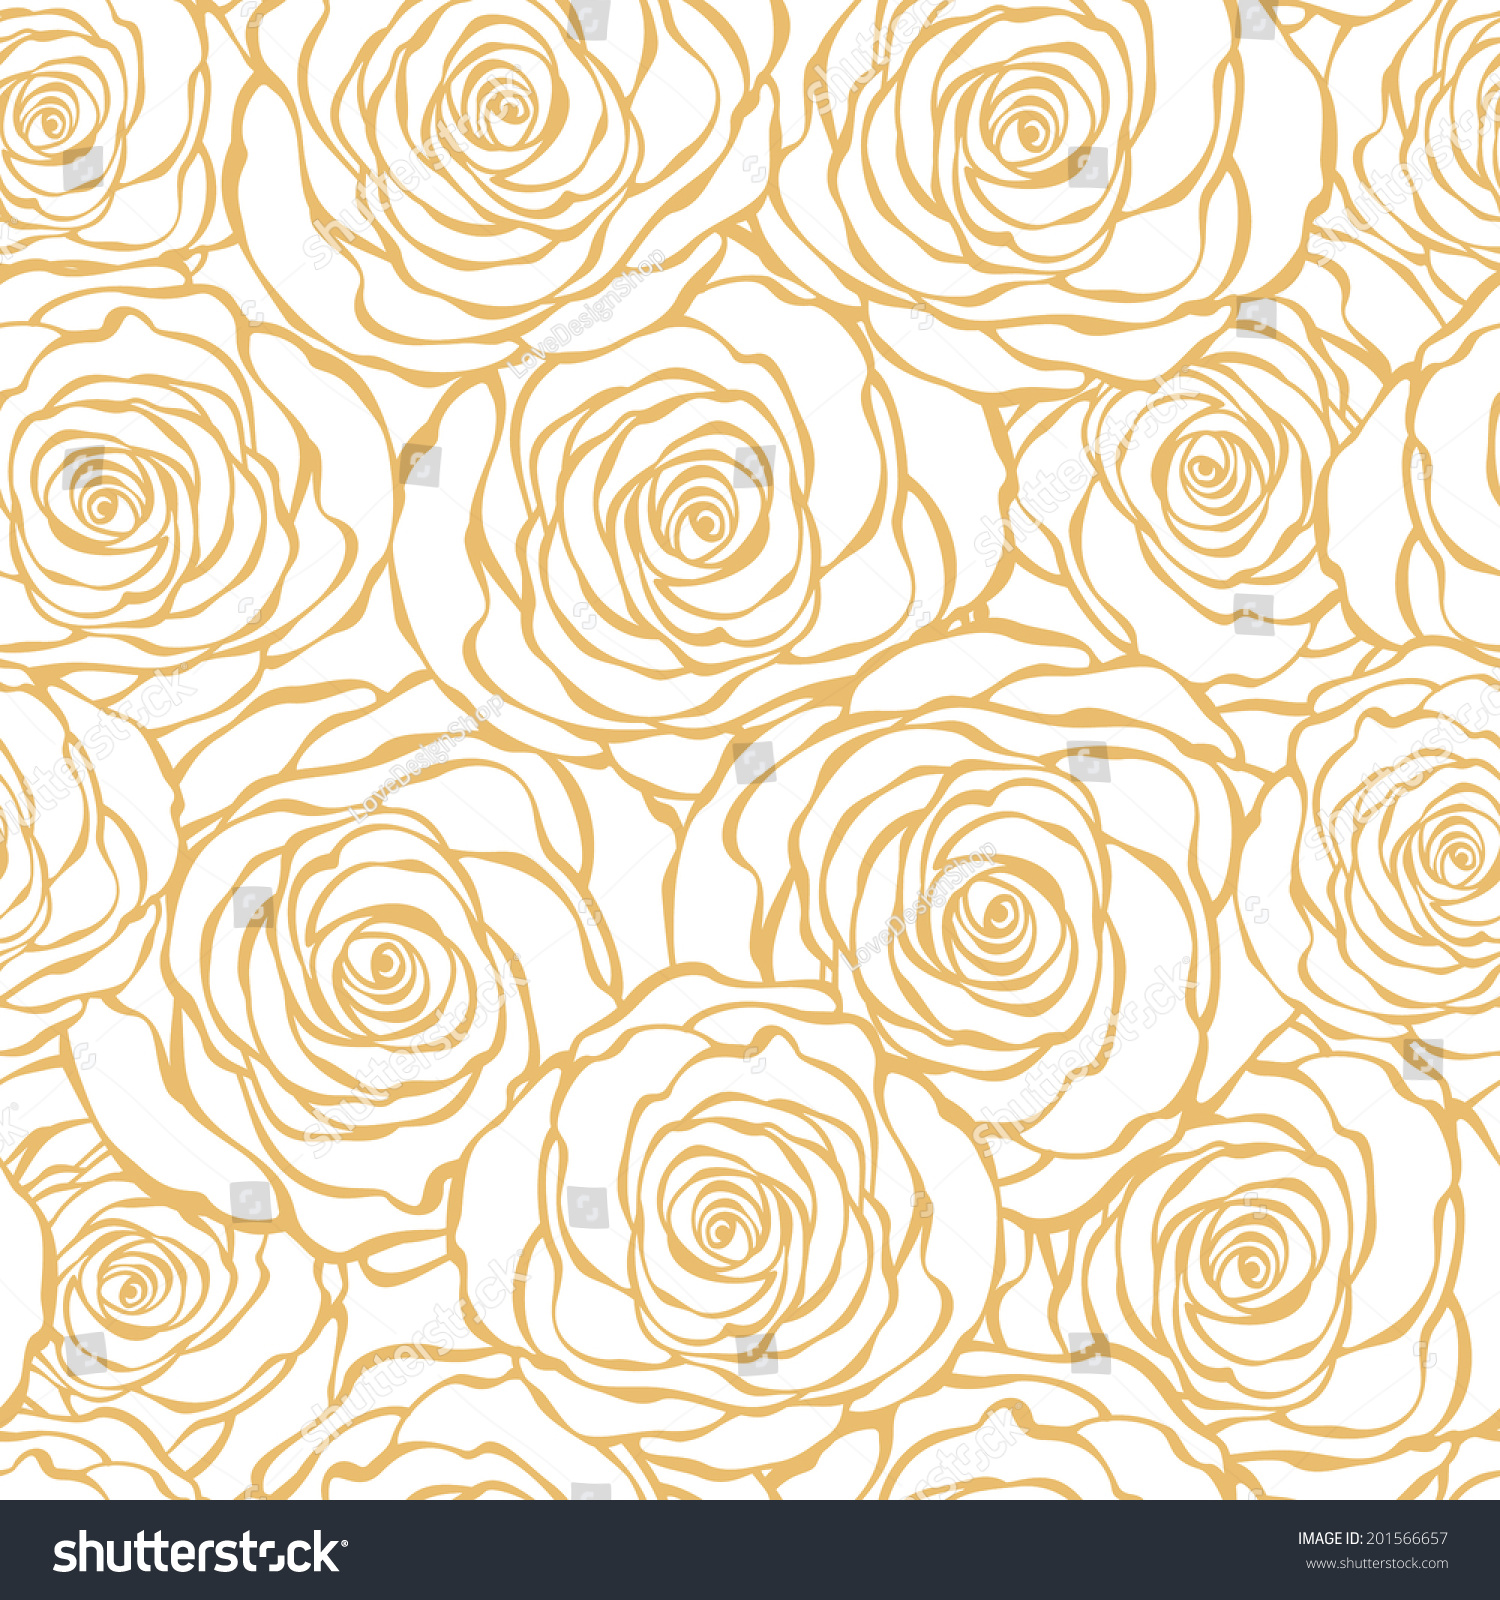 Golden Art Deco Floral Seamless Pattern Stock Vector Royalty Free